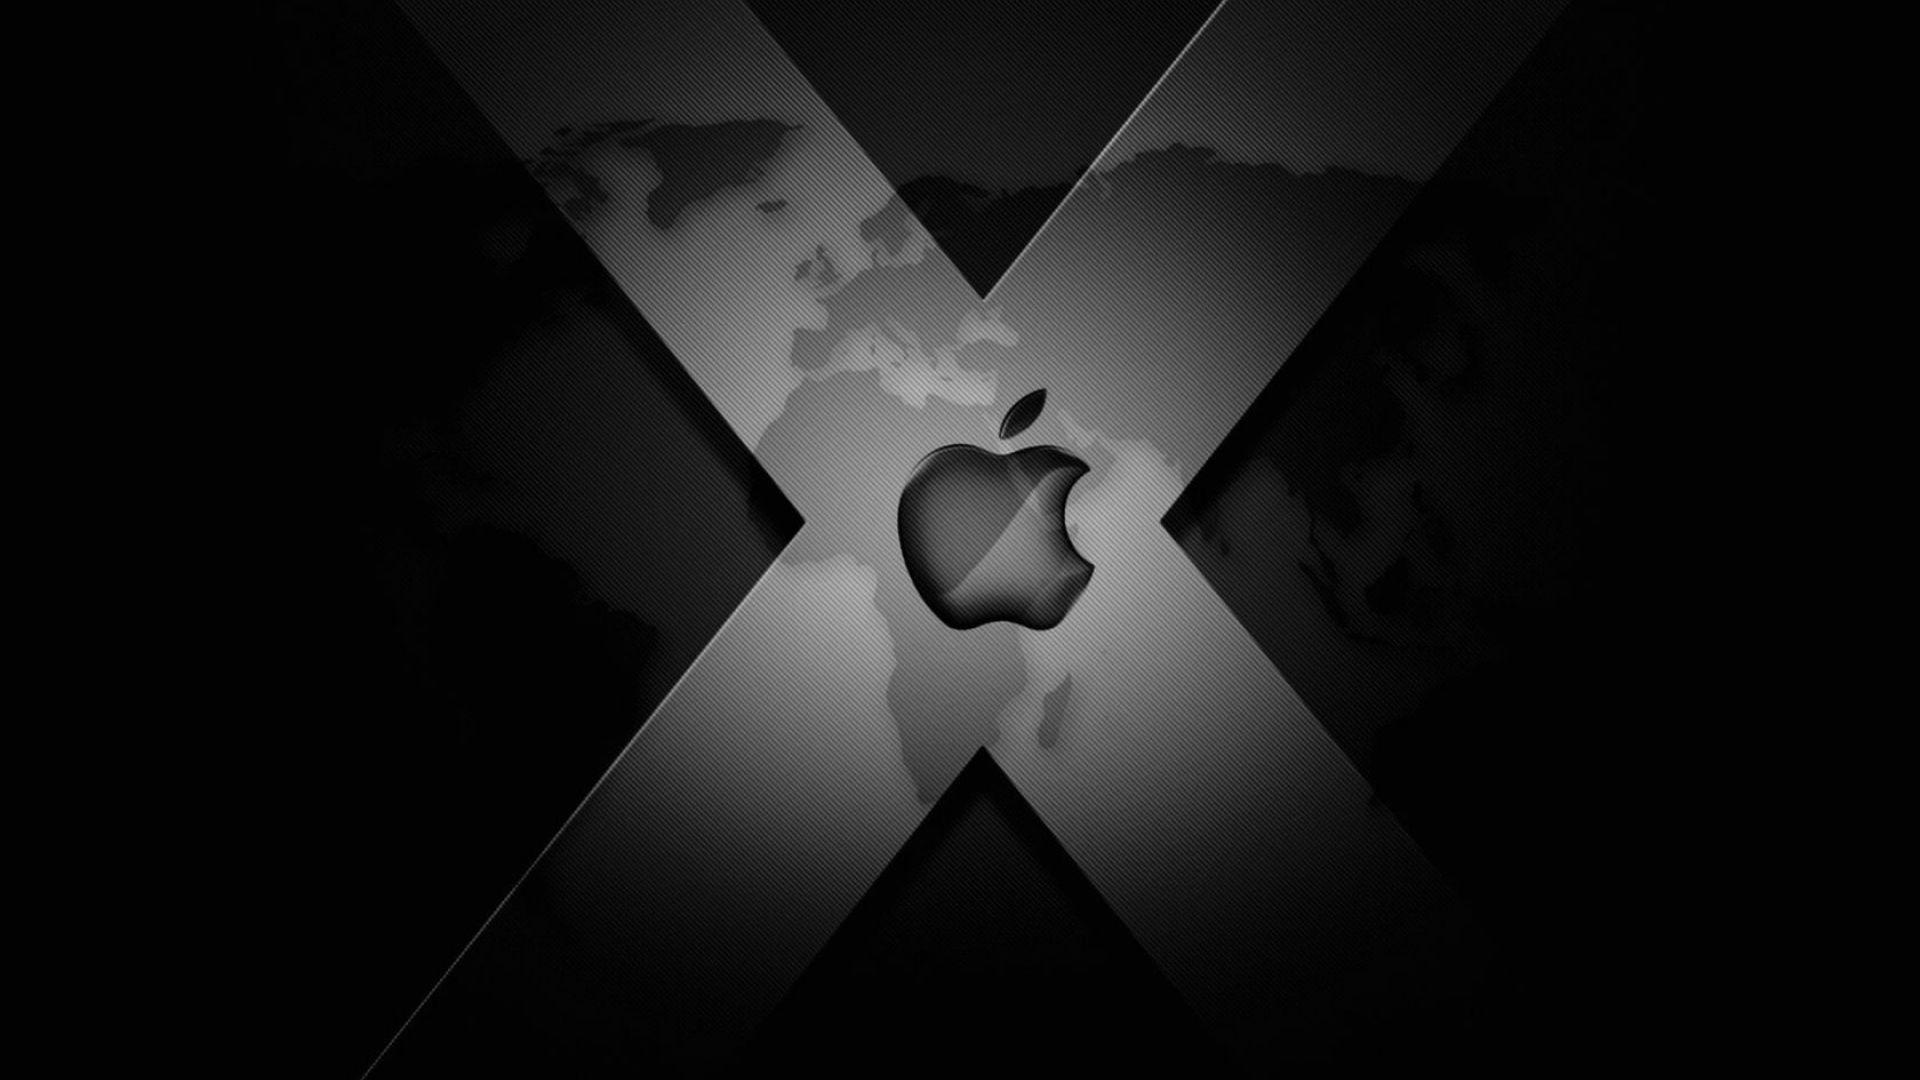 cool apple logos hd. free big x apple logo iphone 6 wallpapers, wallpapers. see more about hd iphone wallpaper, pattern wallpaper and backgrounds. cool logos hd